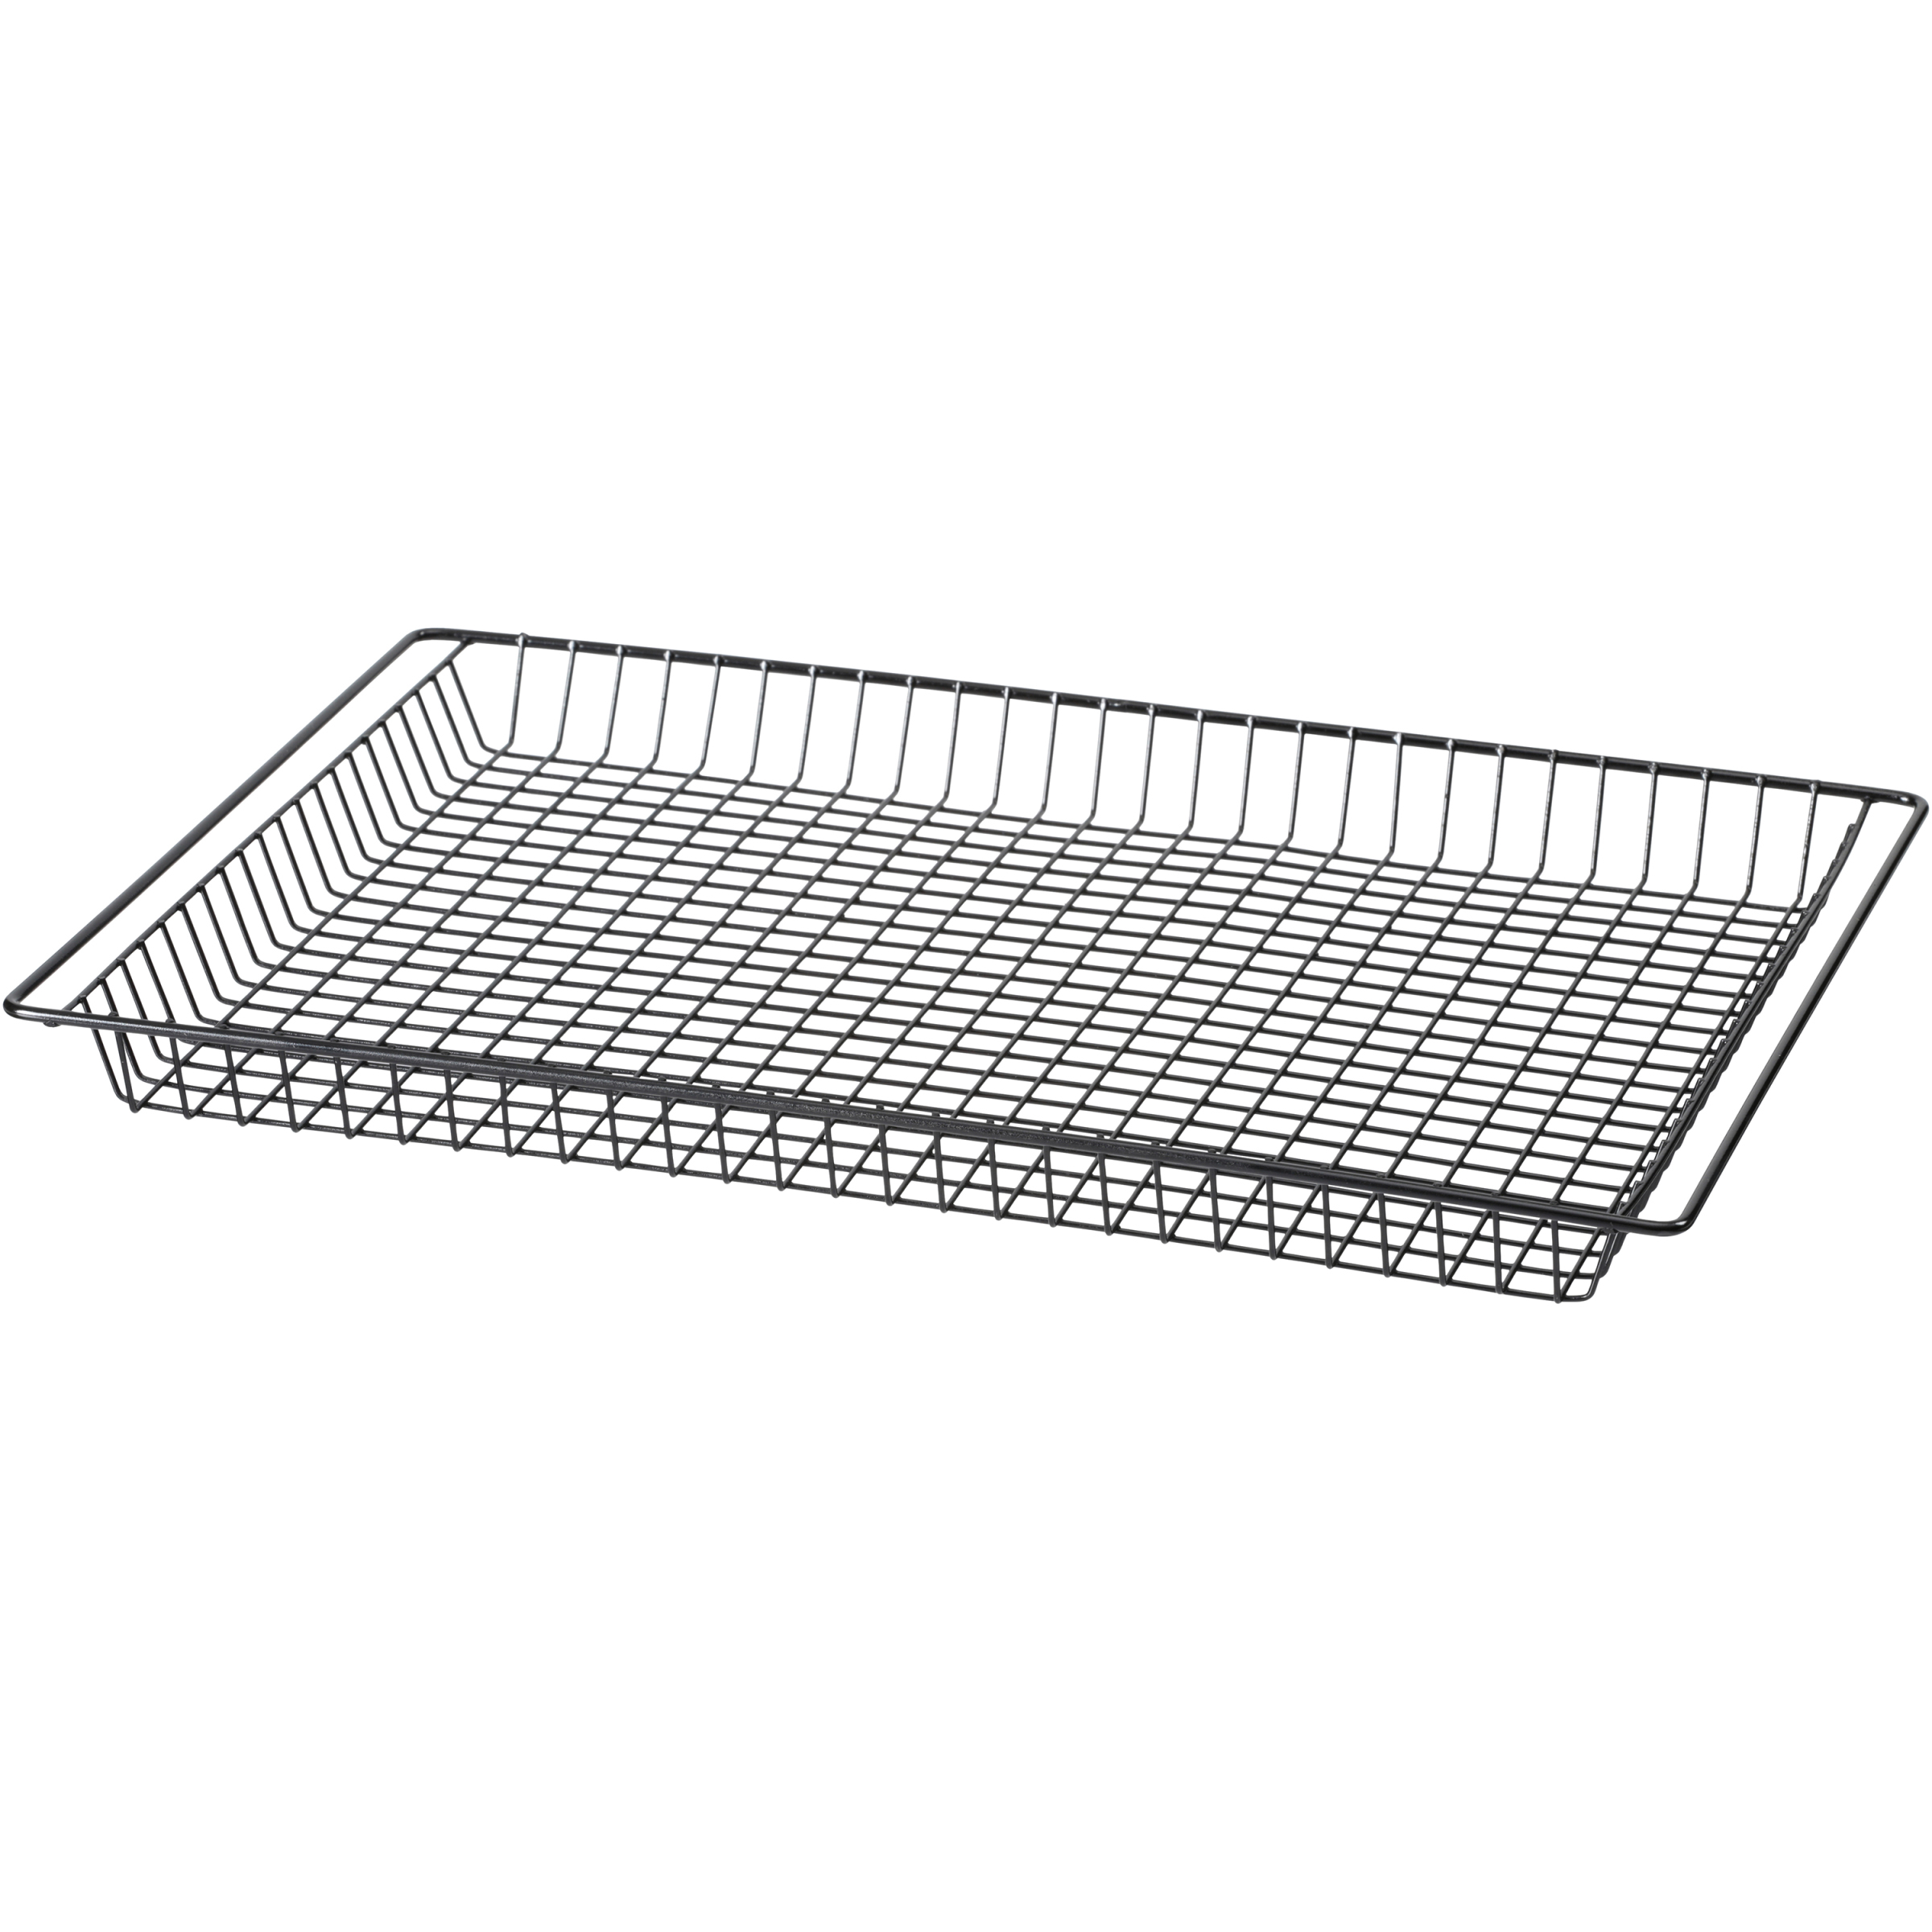 Bradley Smokers Set of 4 Non Stick Jerky Racks - Walmart.com